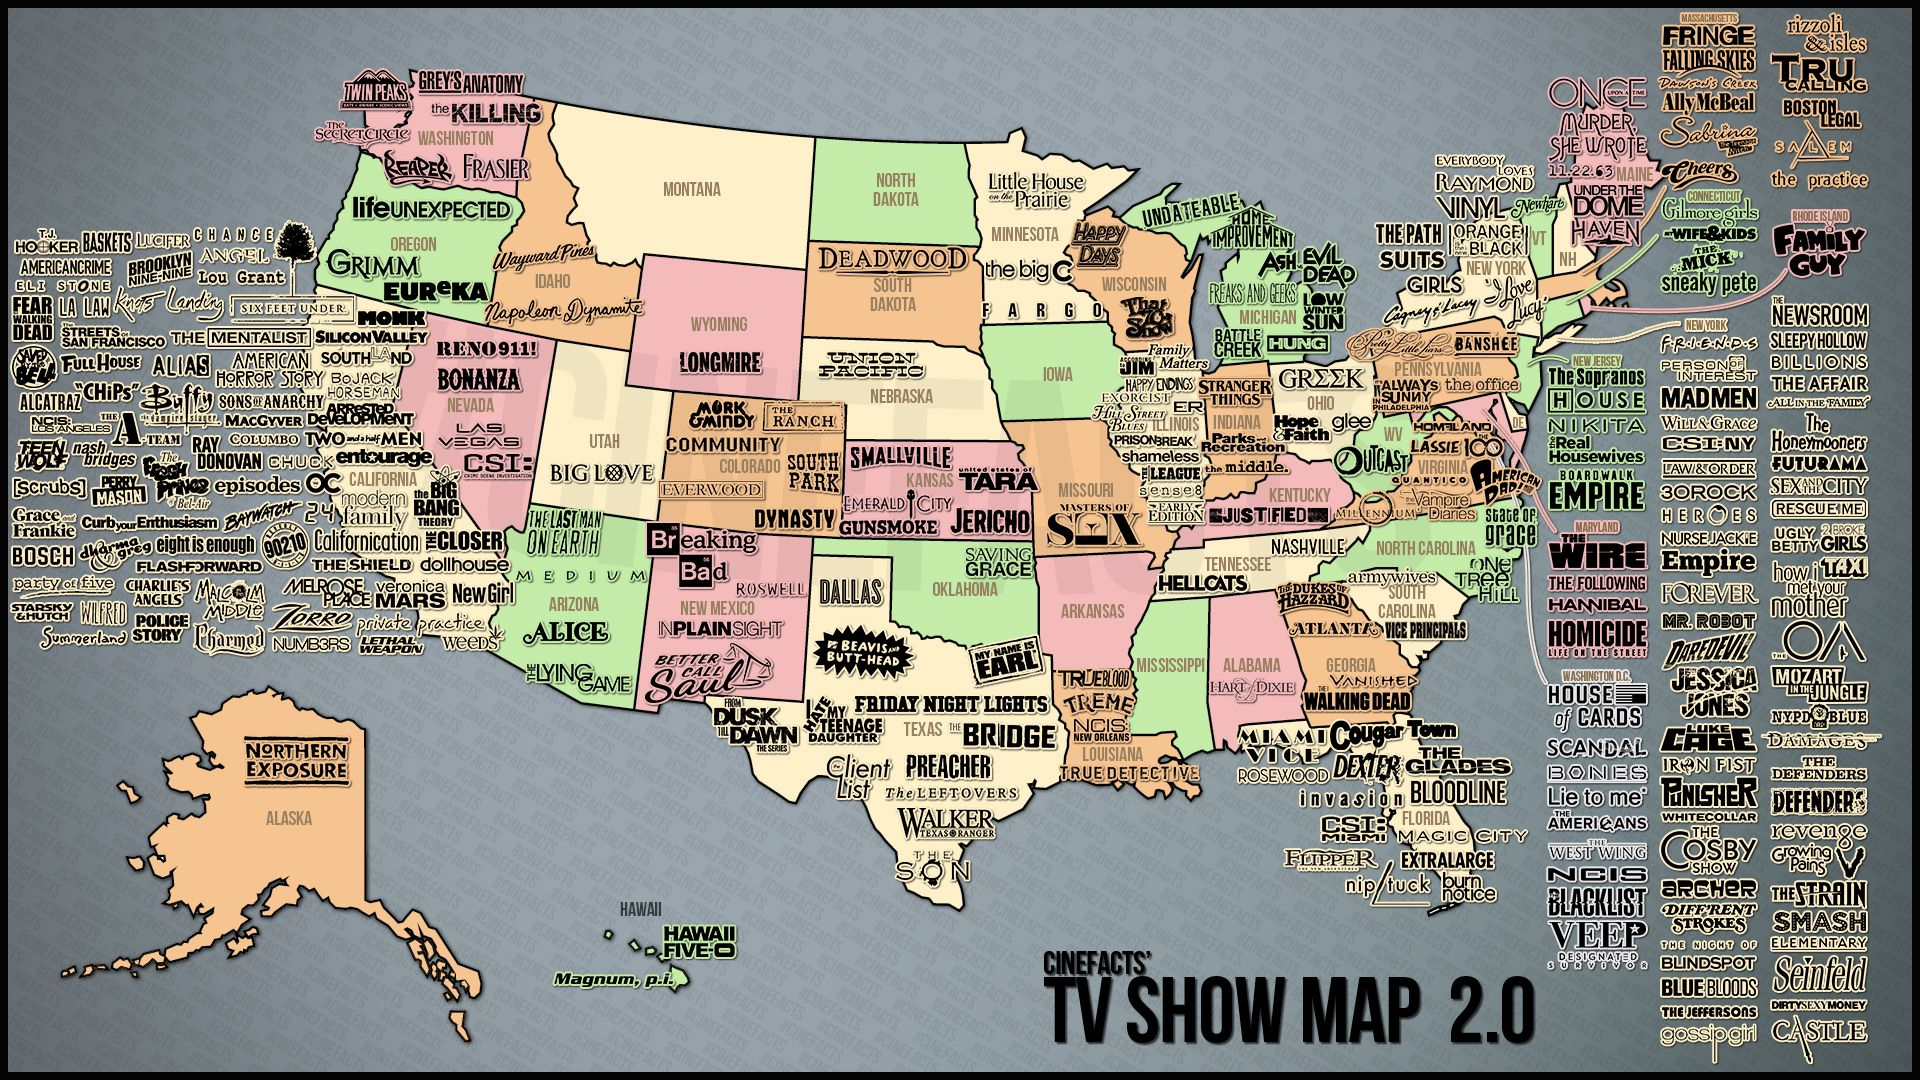 Show Map Of The United States U.S. map of TV shows | Us map, Map, The americans tv show